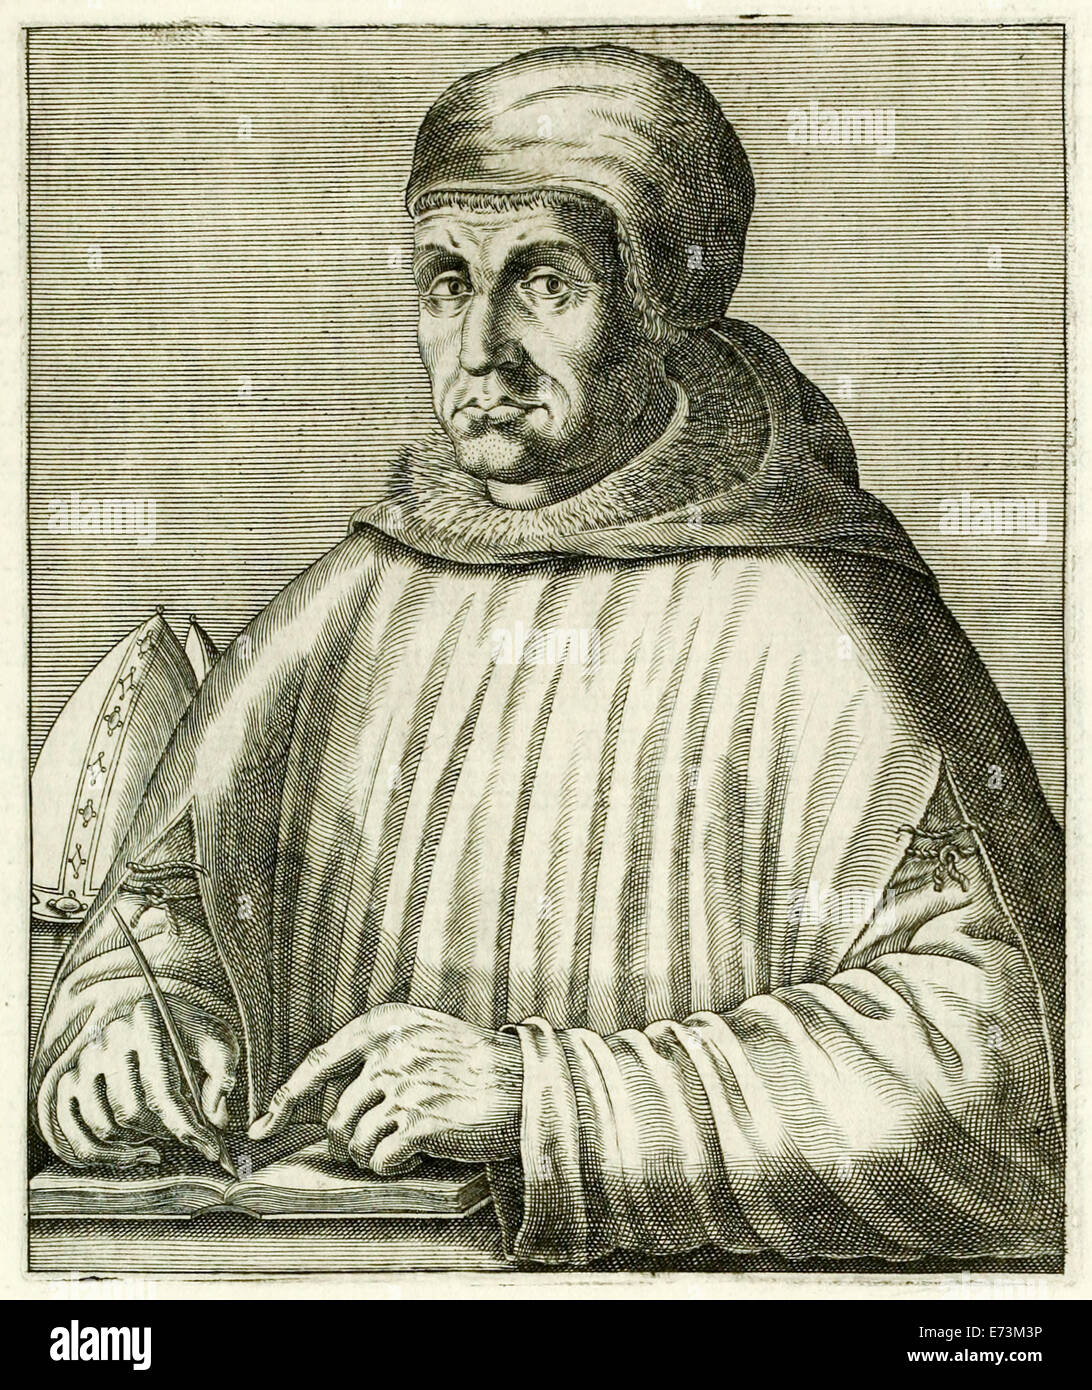 """Peter Lombard (1096-1164) from """"True Portraits…"""" by André Thévet published in 1594. See description for - Stock Image"""